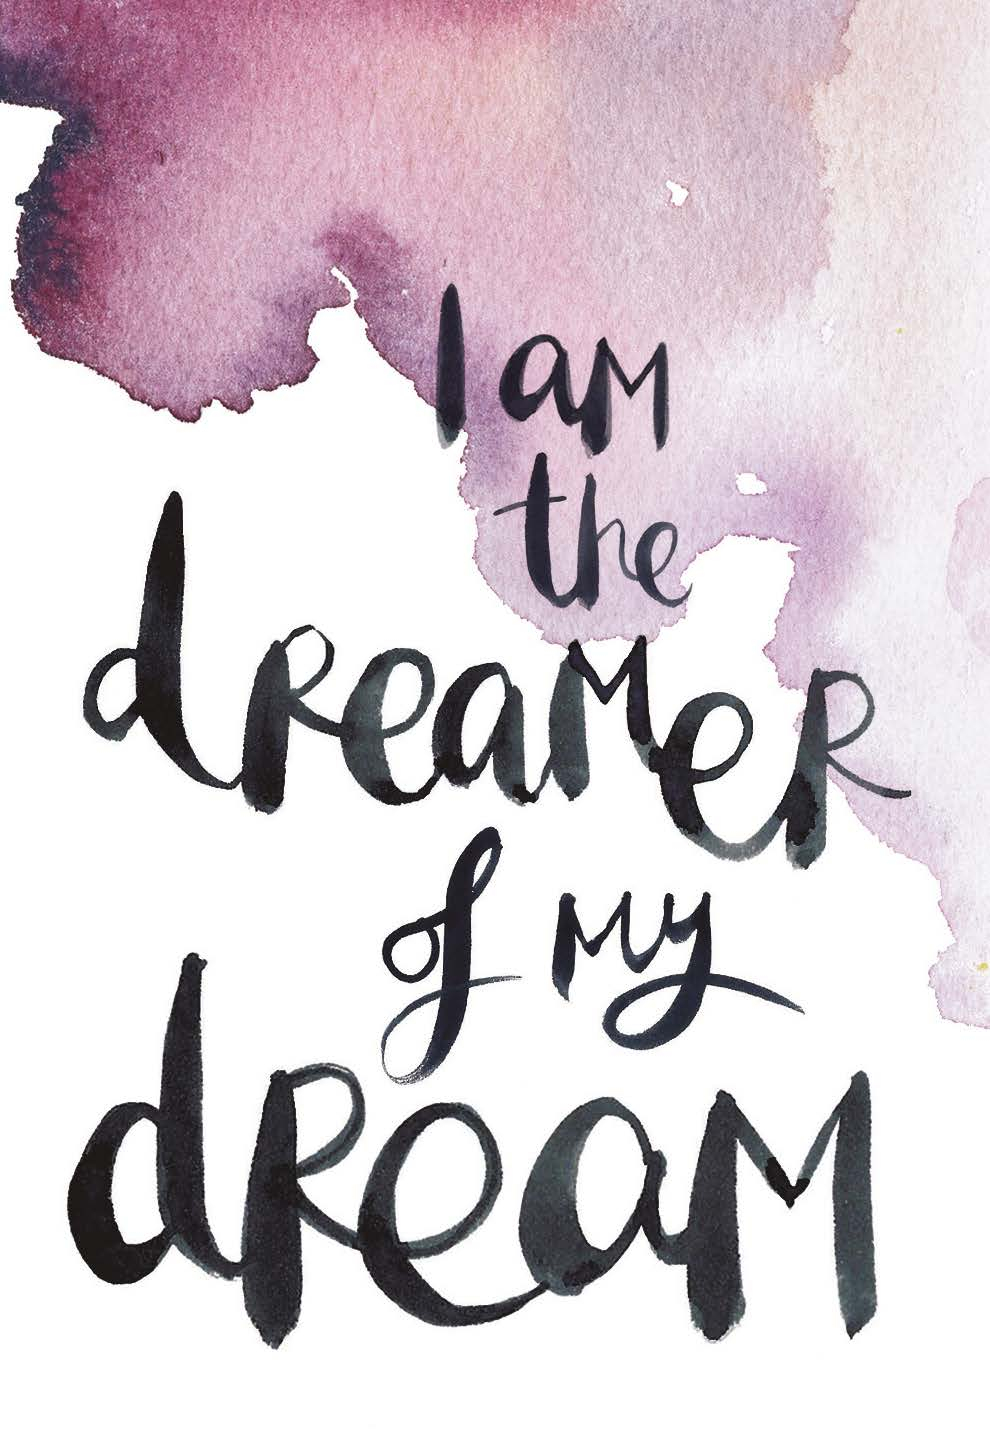 I am the dreamer of my dream. | The Universe Has Your Back card deck by Gabby Bernstein